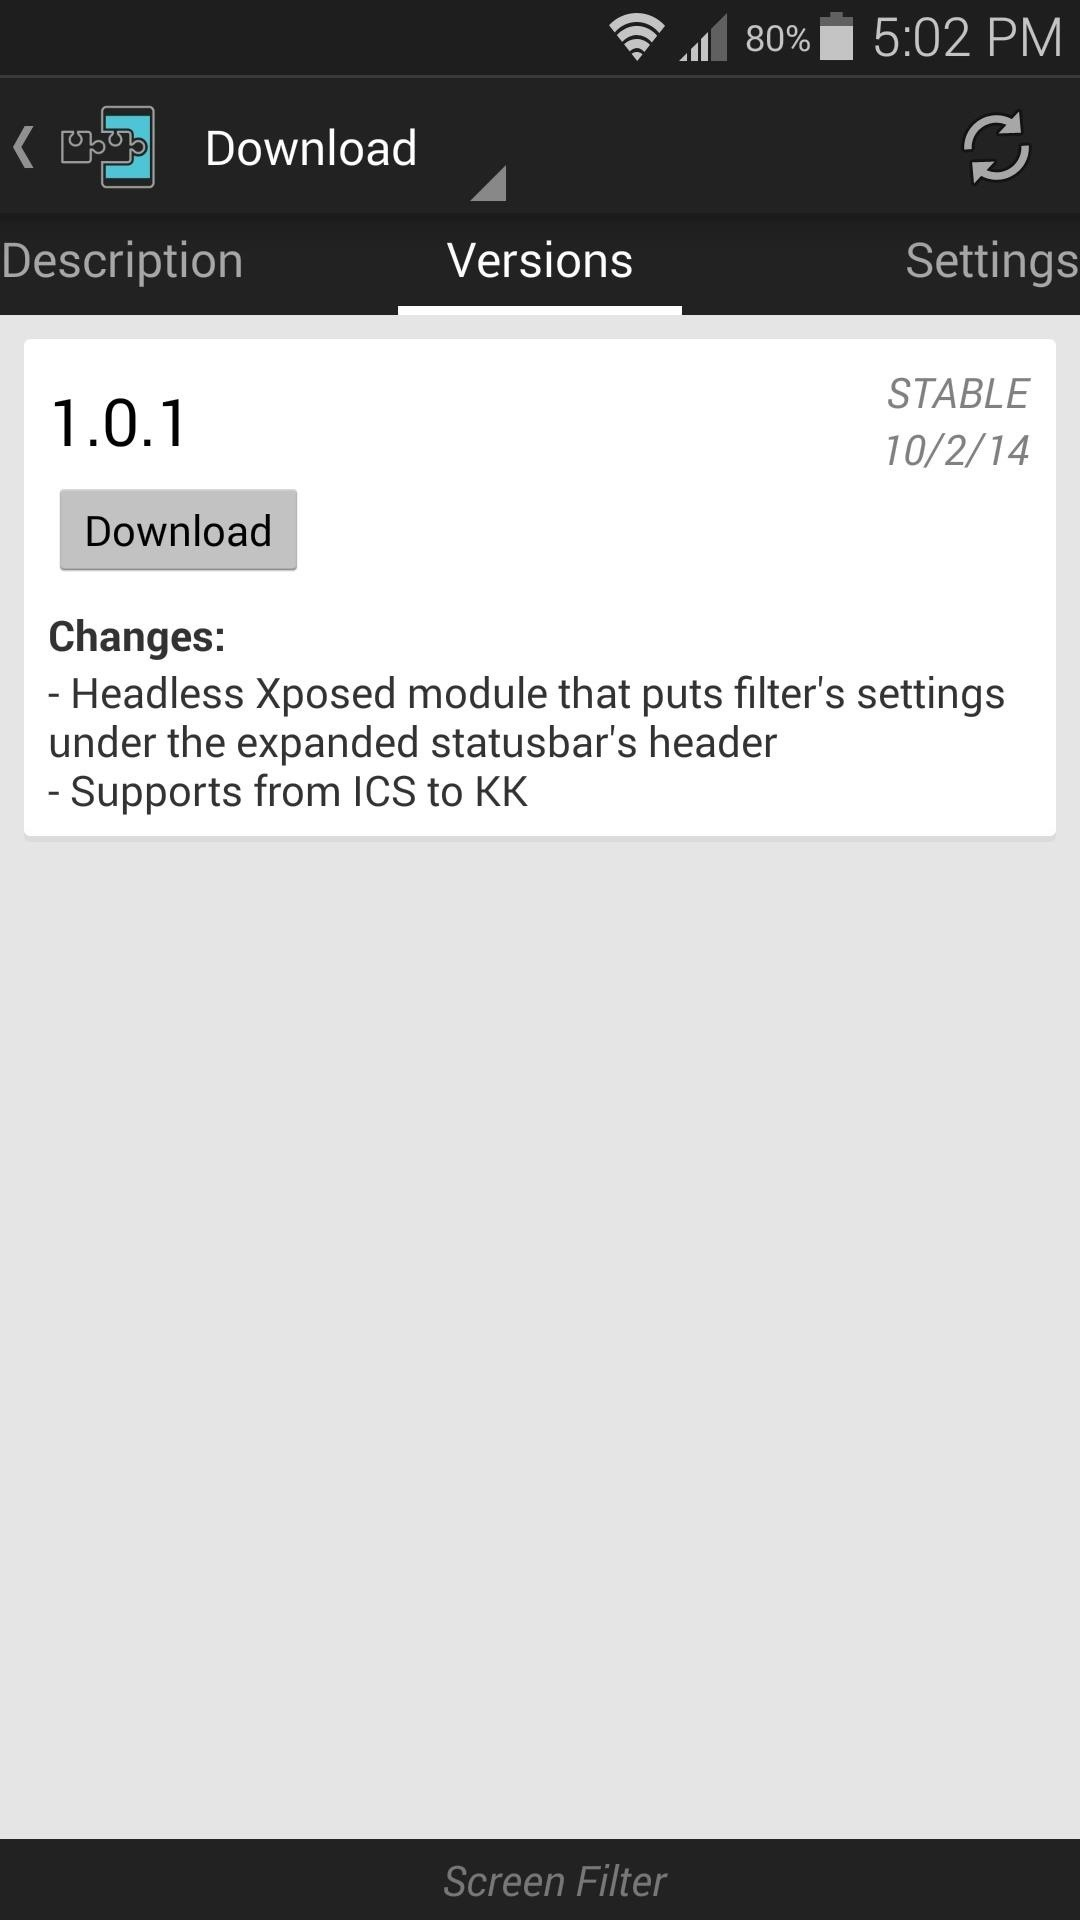 Eliminate Screen Flicker Lower Minimum Brightness On Android 2 Way Switch Flickering After A Few Seconds Androids Installer Interface Should Come Right Up So Tap Install The Next